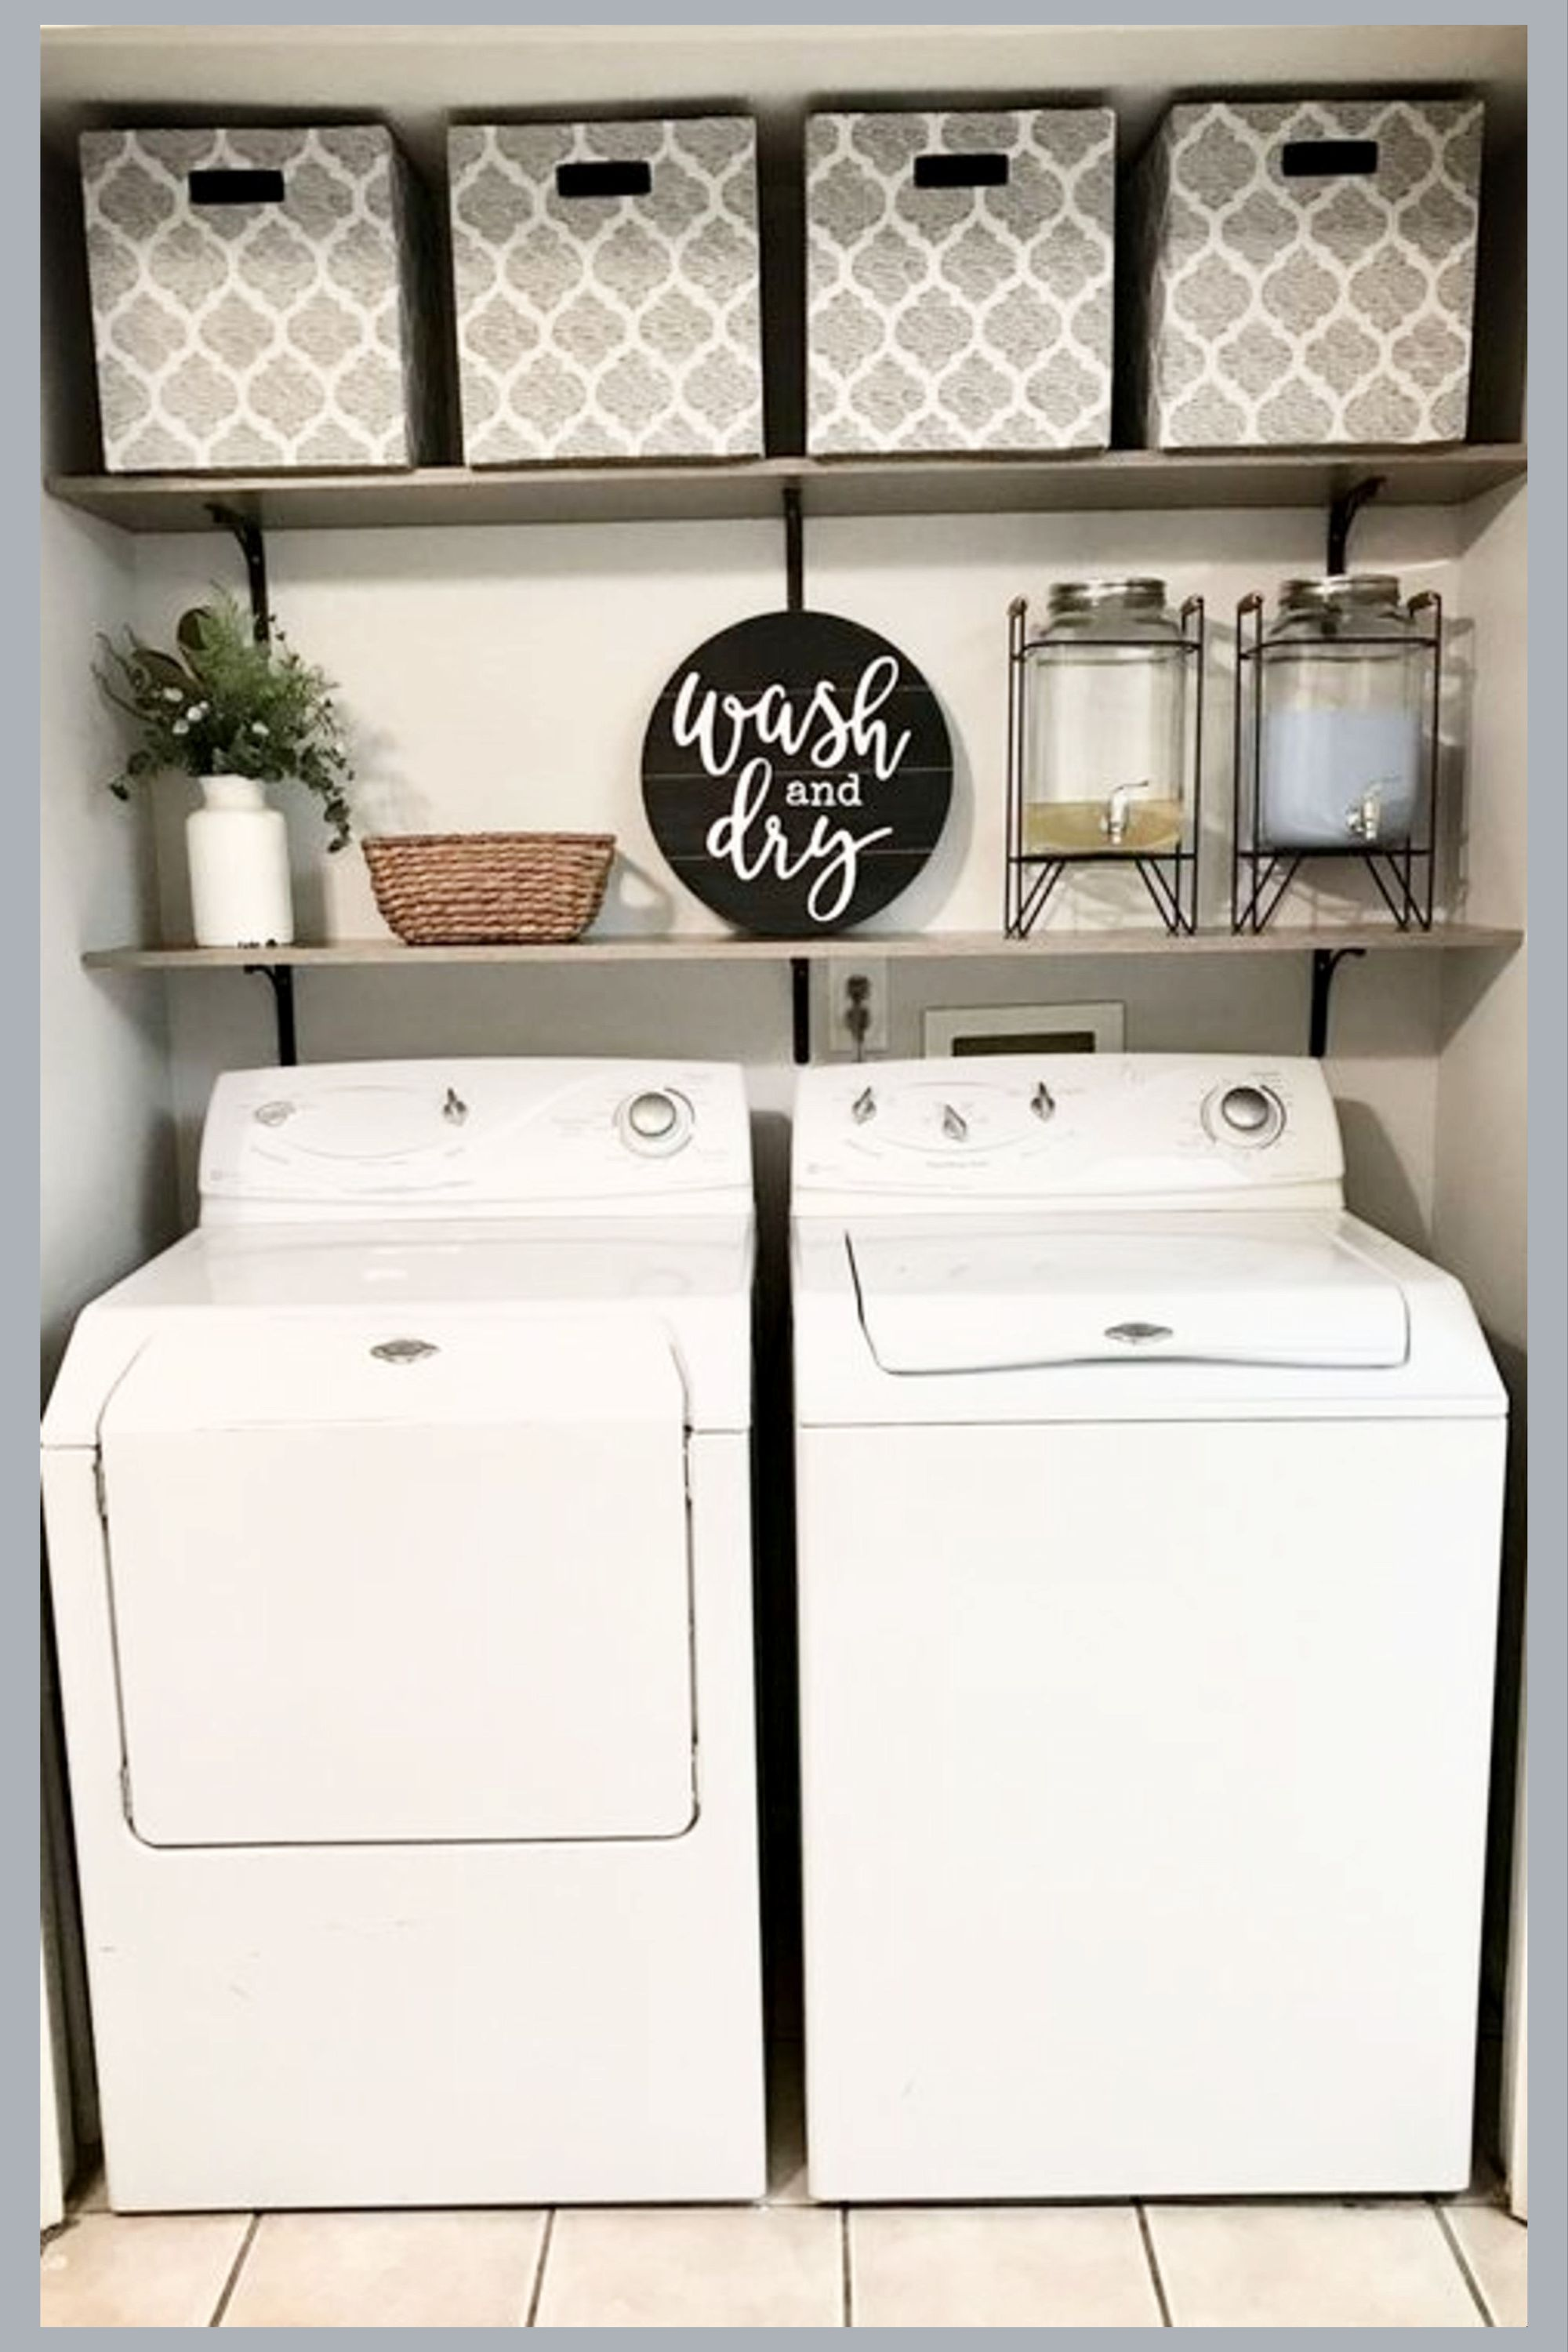 Small Laundry Room Ideas - Space Saving DIY Creative Ideas for Tiny Laundry Room... - #creative #DIY #ideas #laundry #Room #saving #small #space #Tiny